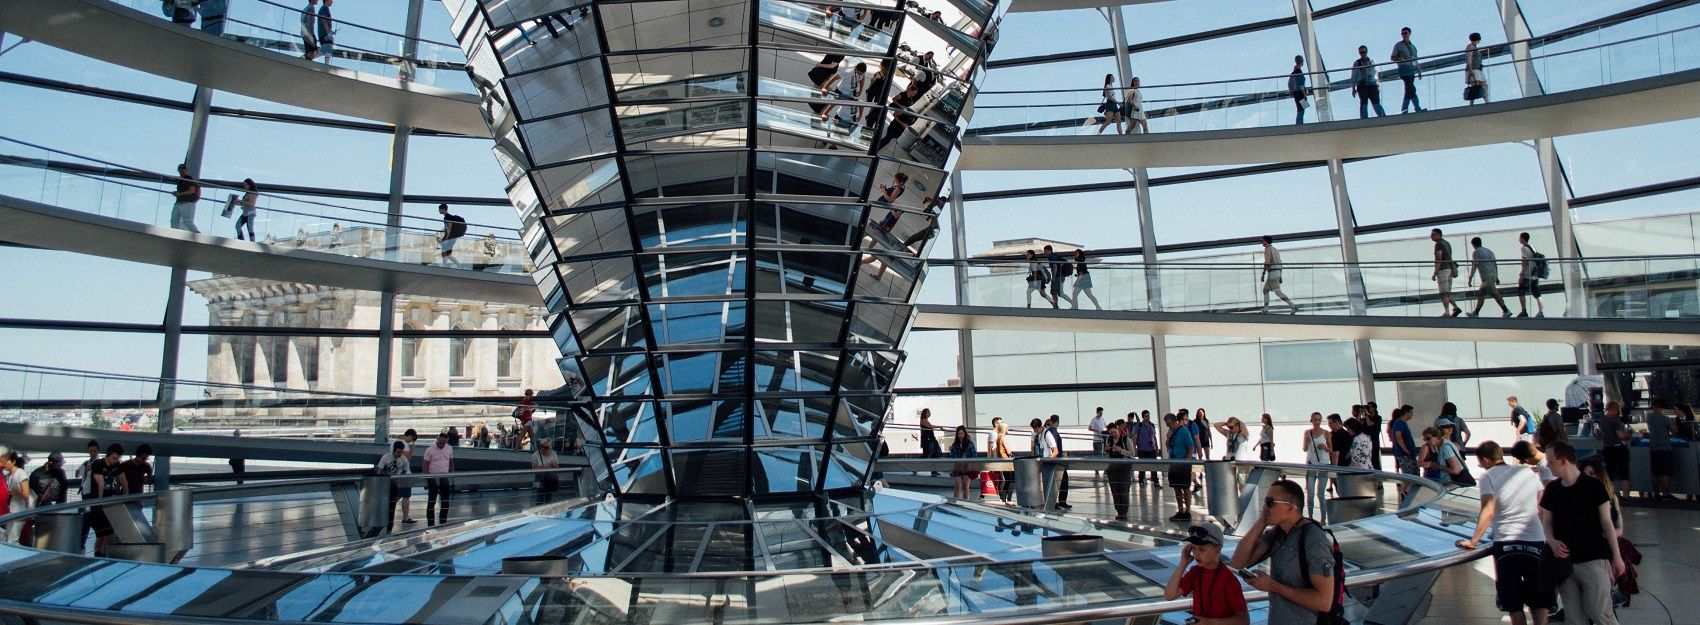 famous Reichstag architecture abroad in Germany